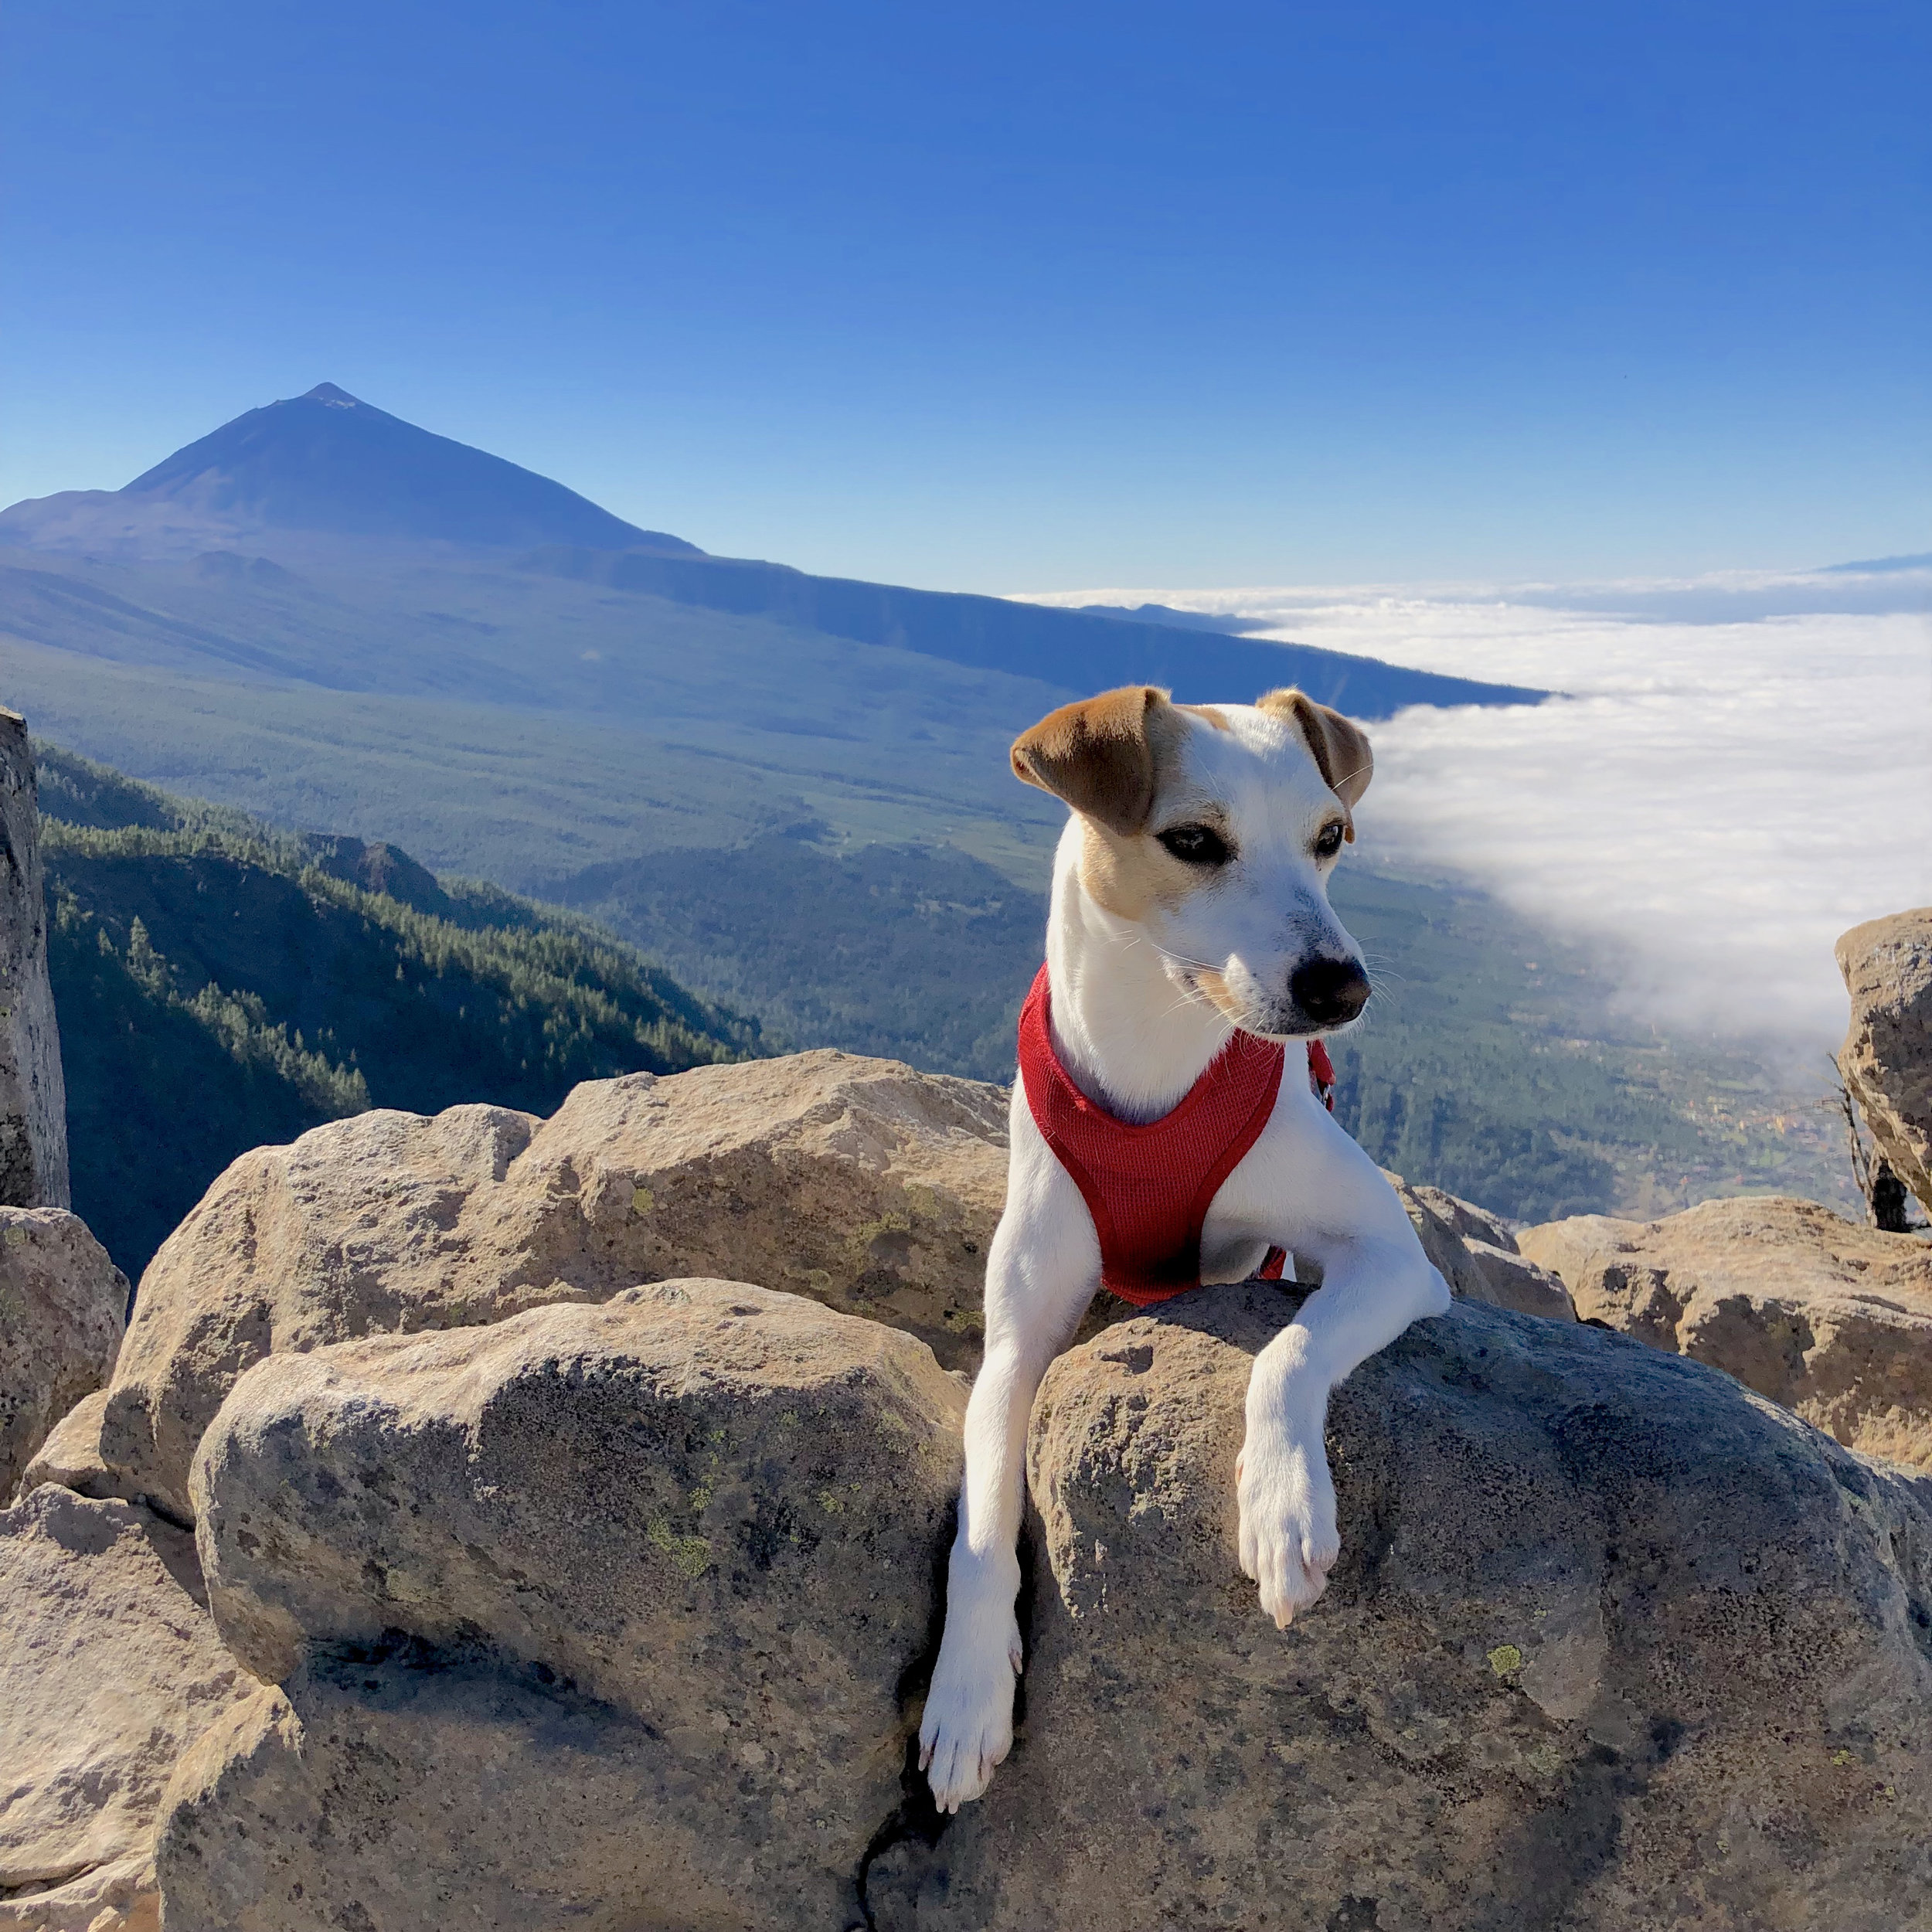 A sea of clouds from Teide.